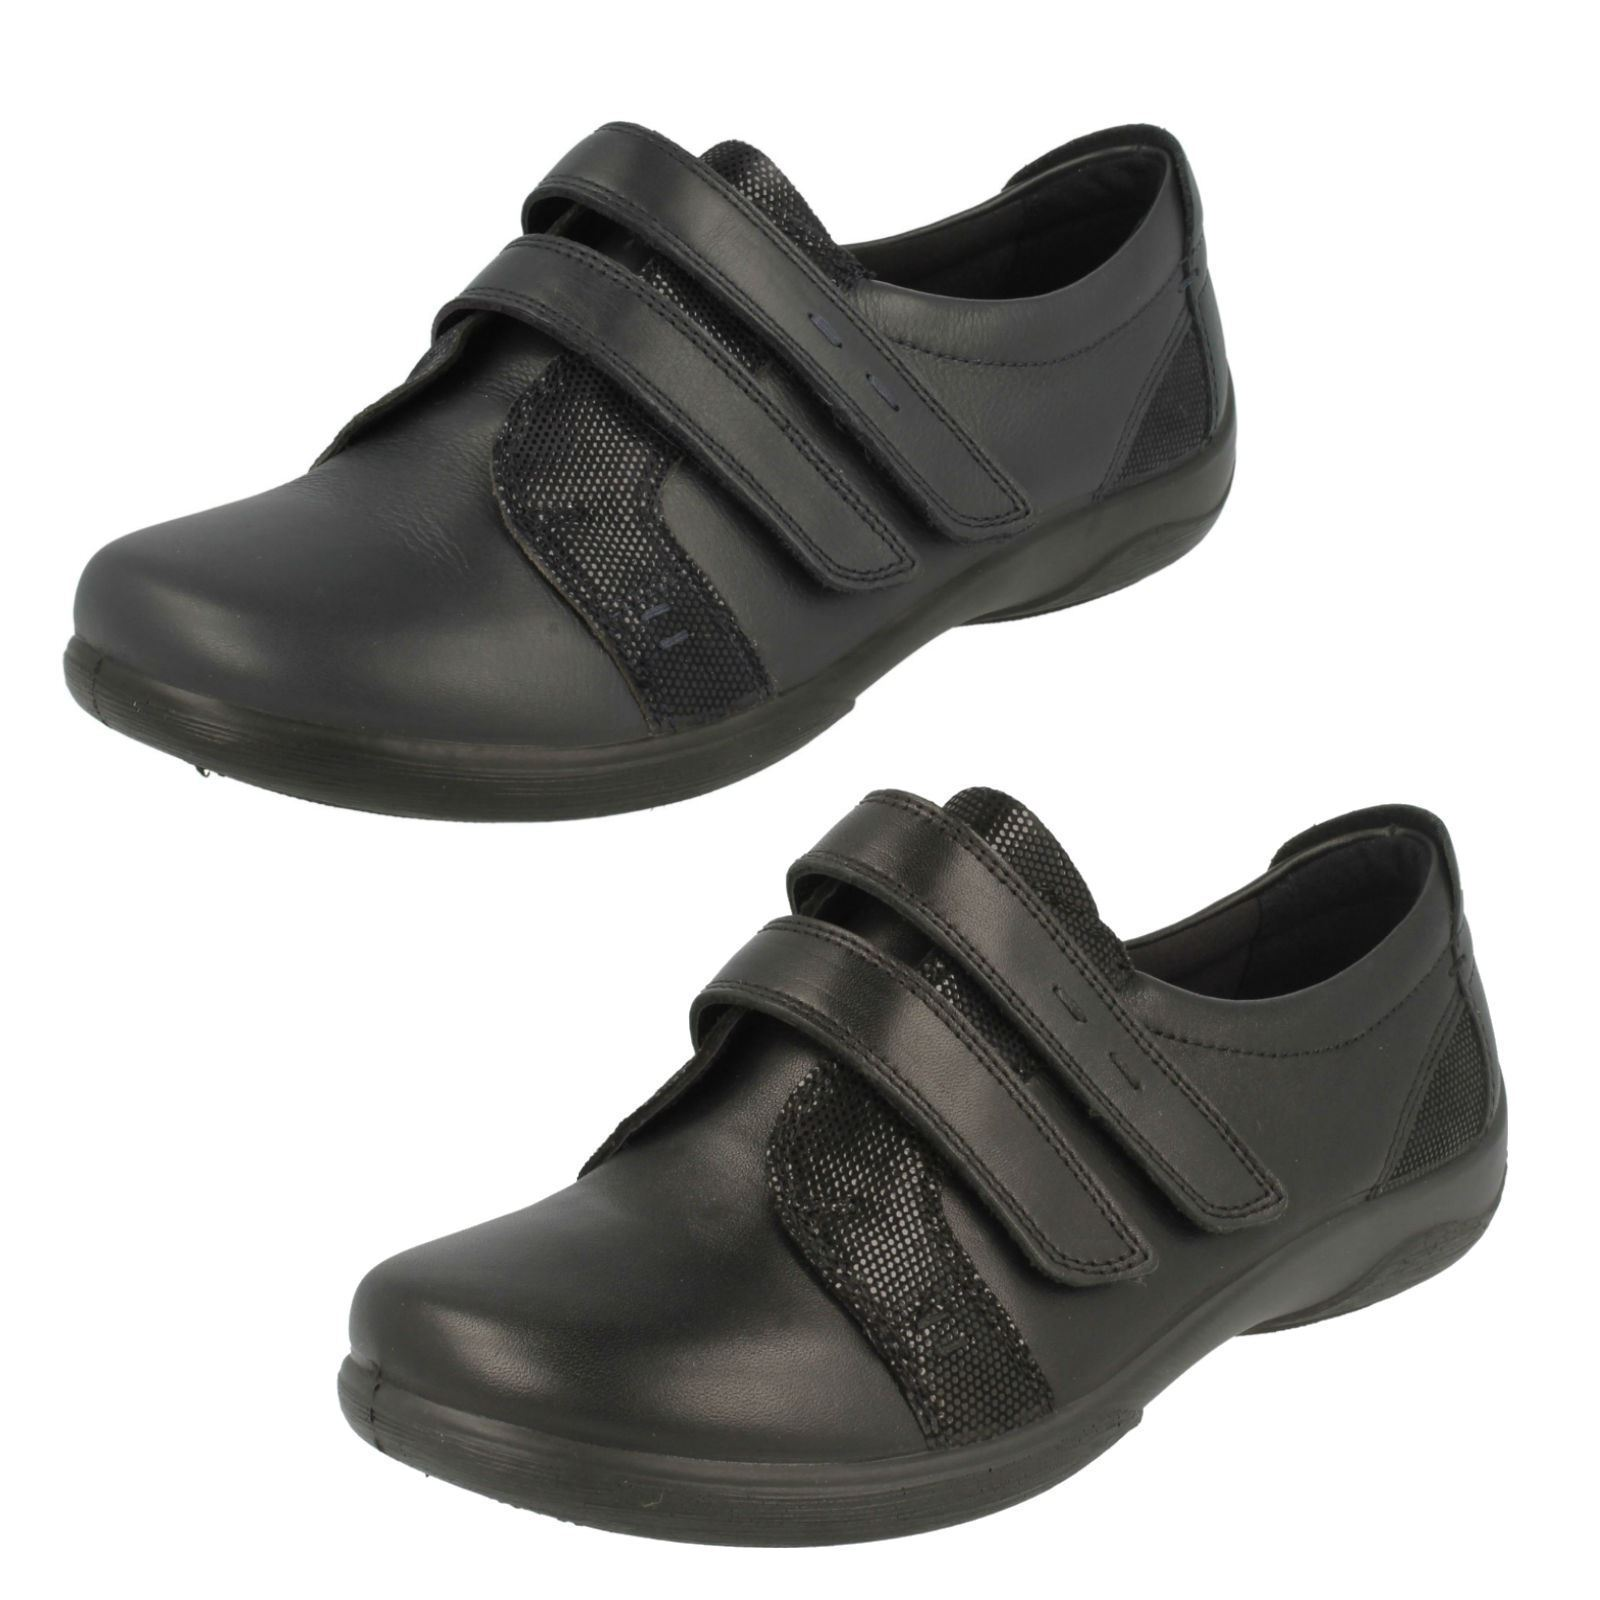 Casual salvaje Descuento por tiempo limitado Ladies Verse Leather Dual Fit Hook & Loop Fastening Shoe By Padders 65.00